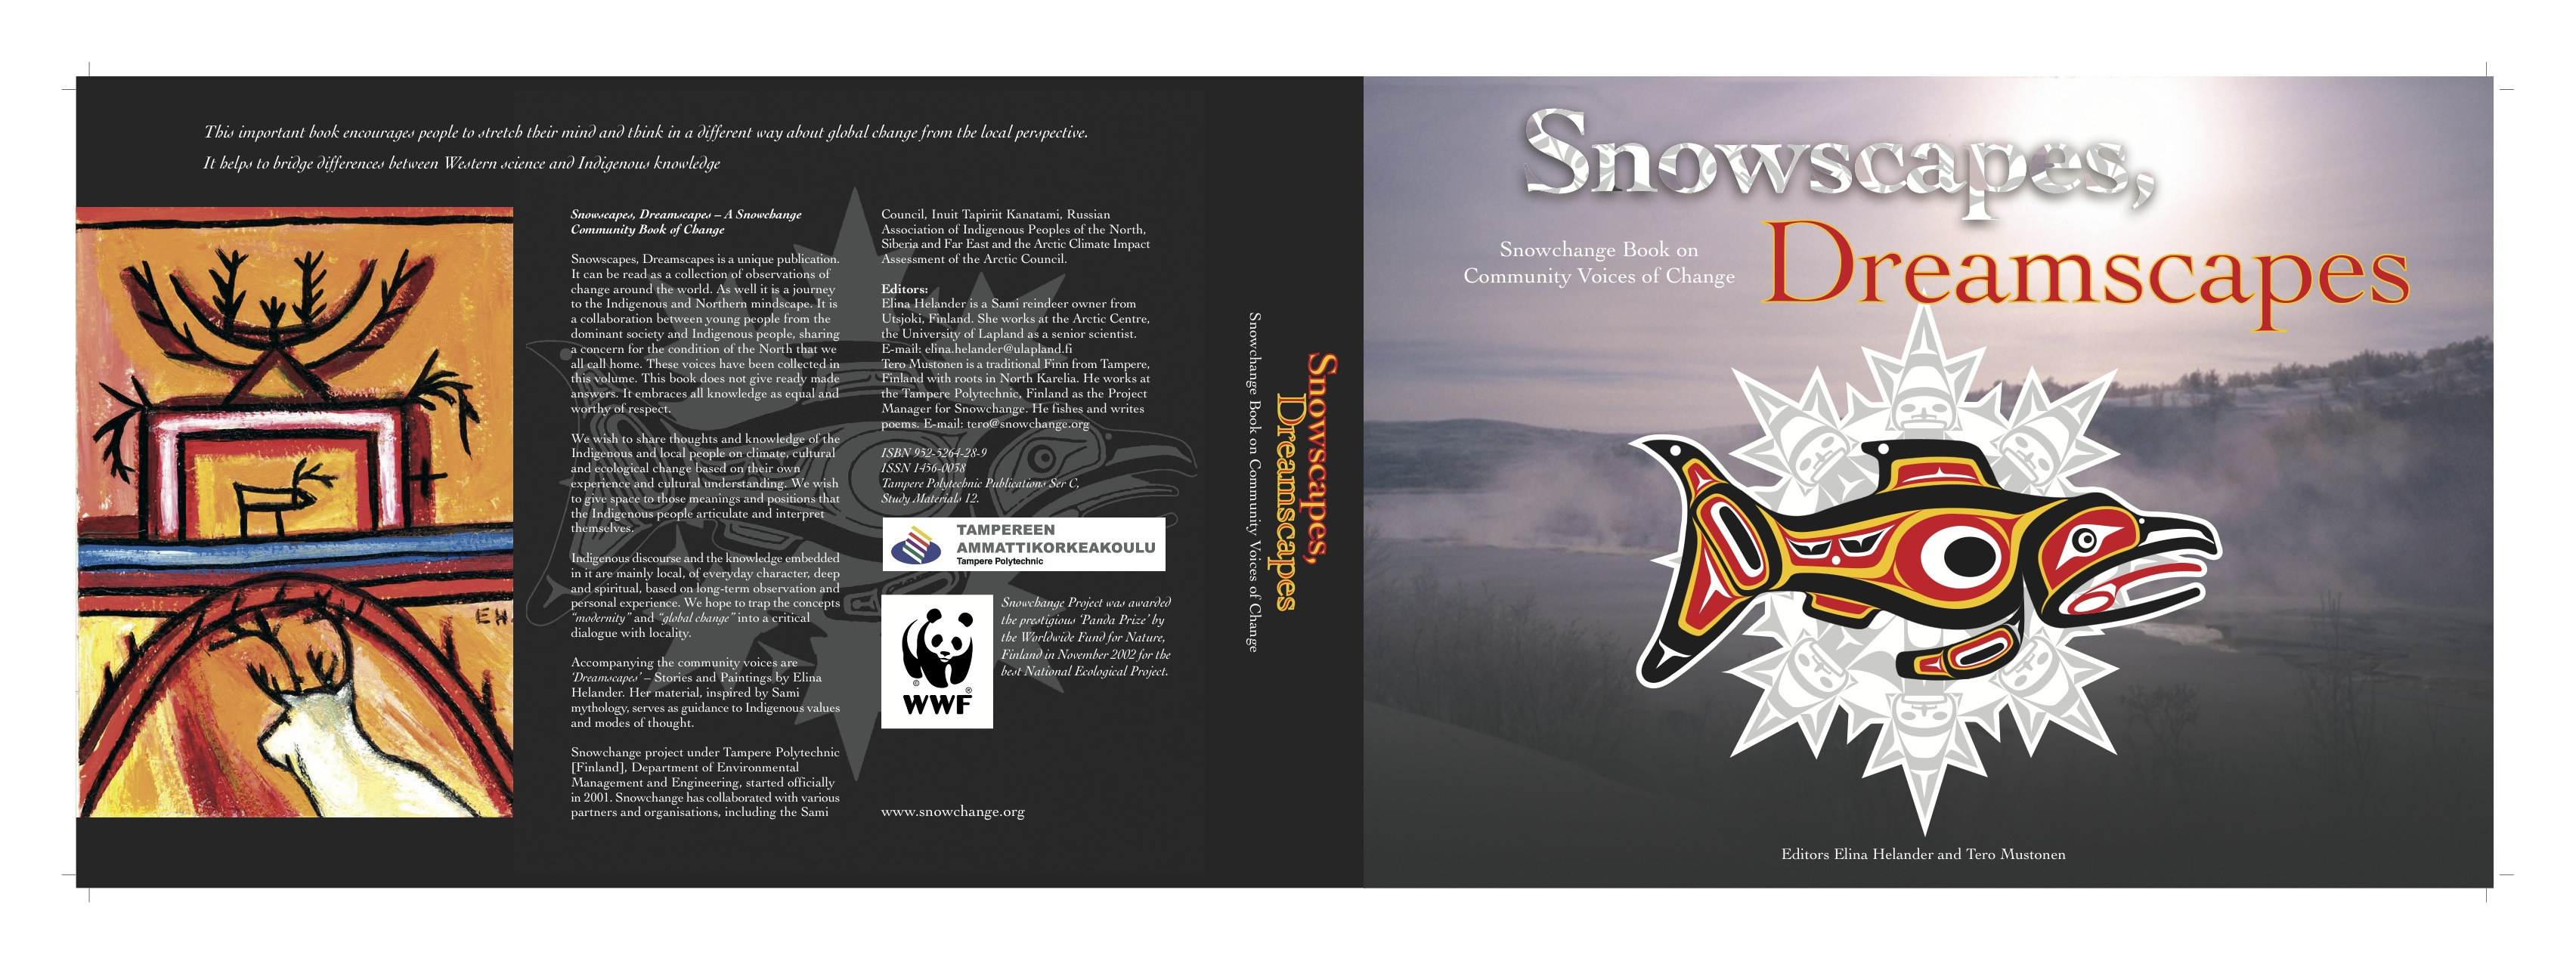 Snowscapes Cover, 2004